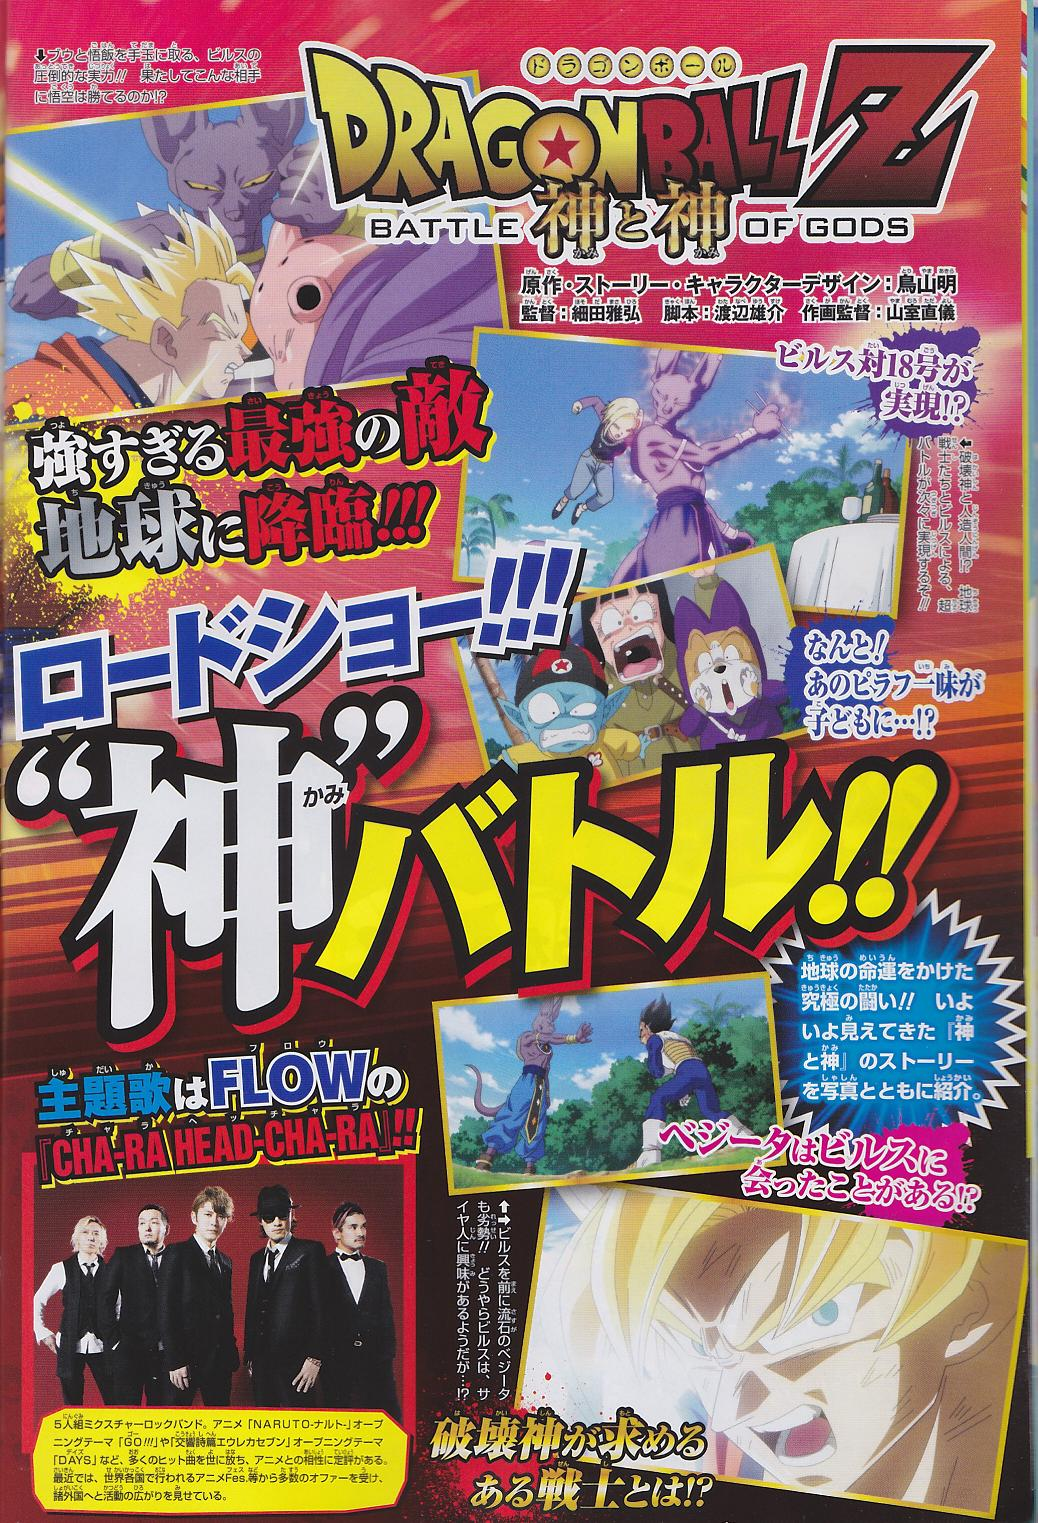 v jump magazine dragon ball z 2013 dragon ball z news